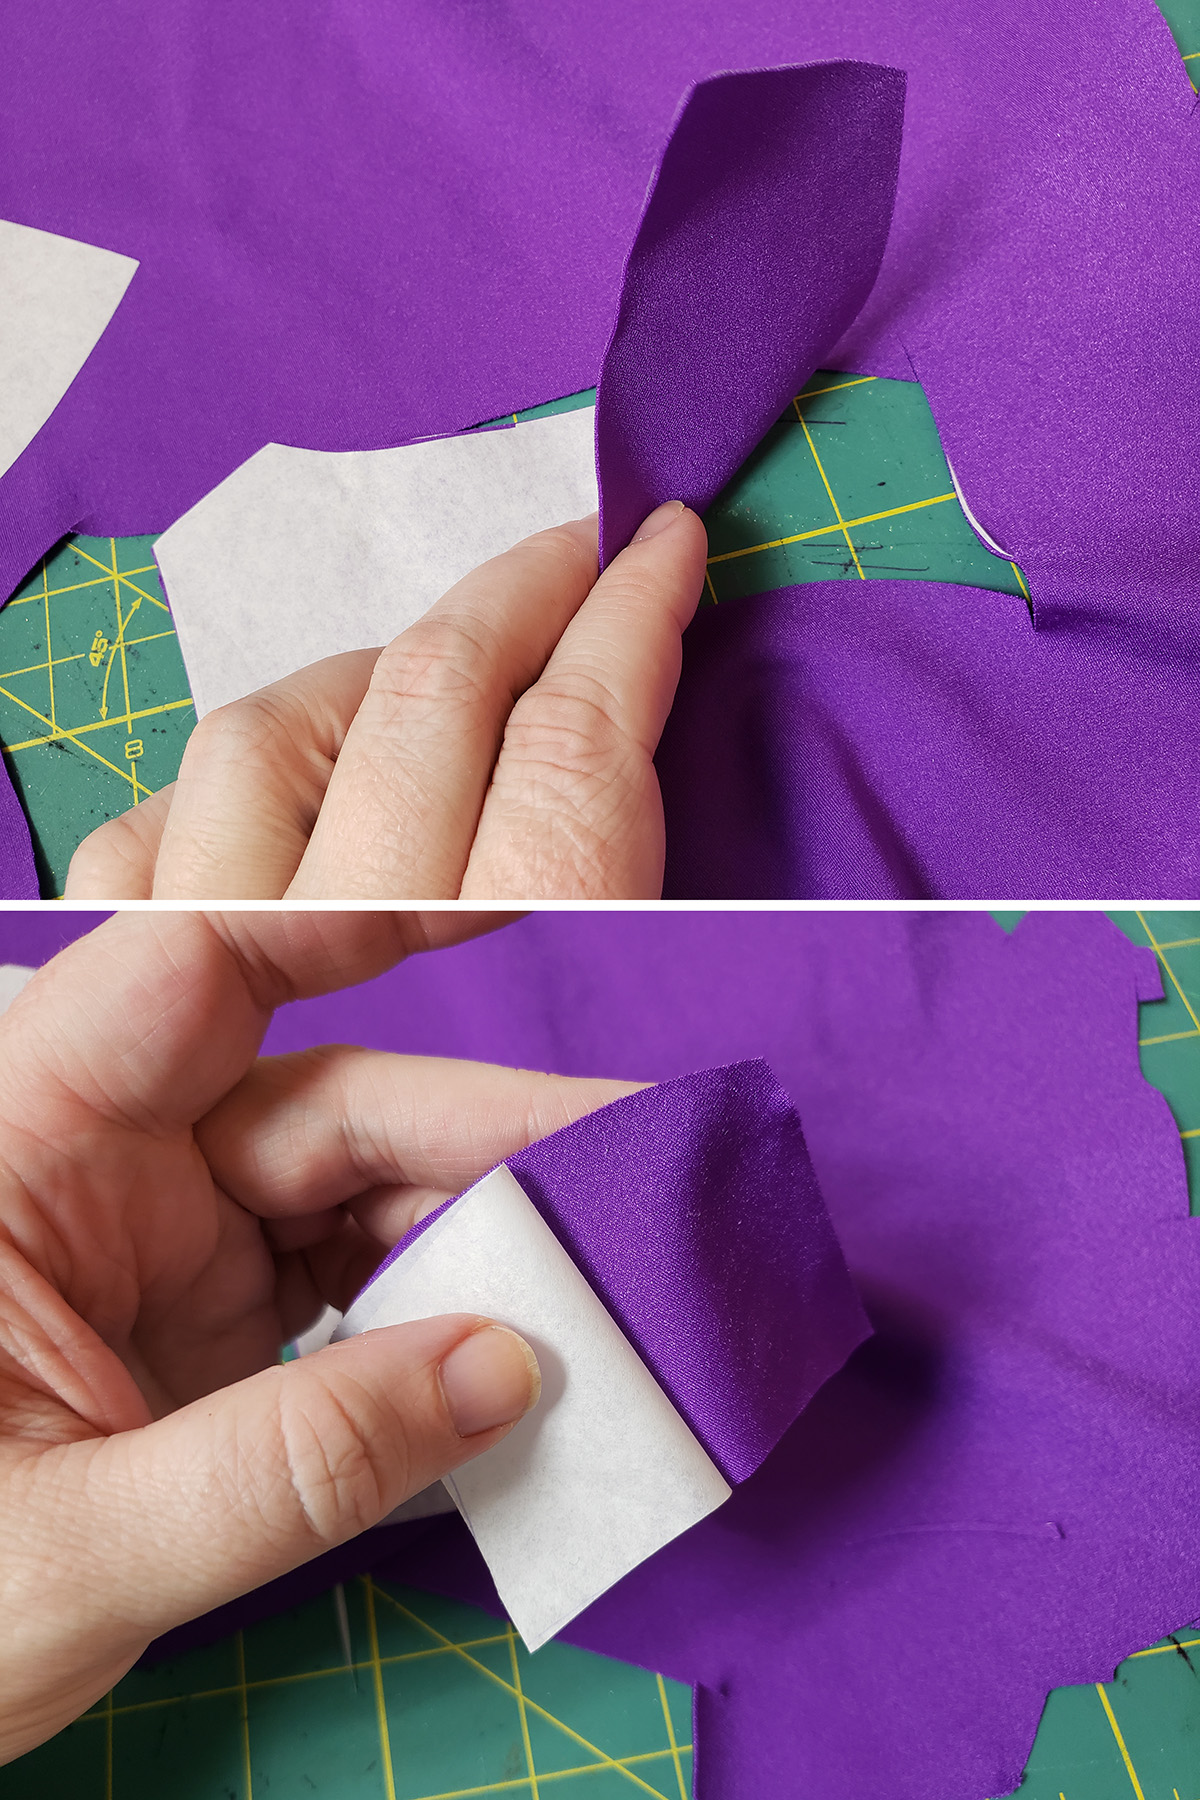 A two part compilation image showing pattern pieces being cut out from purple spandex.